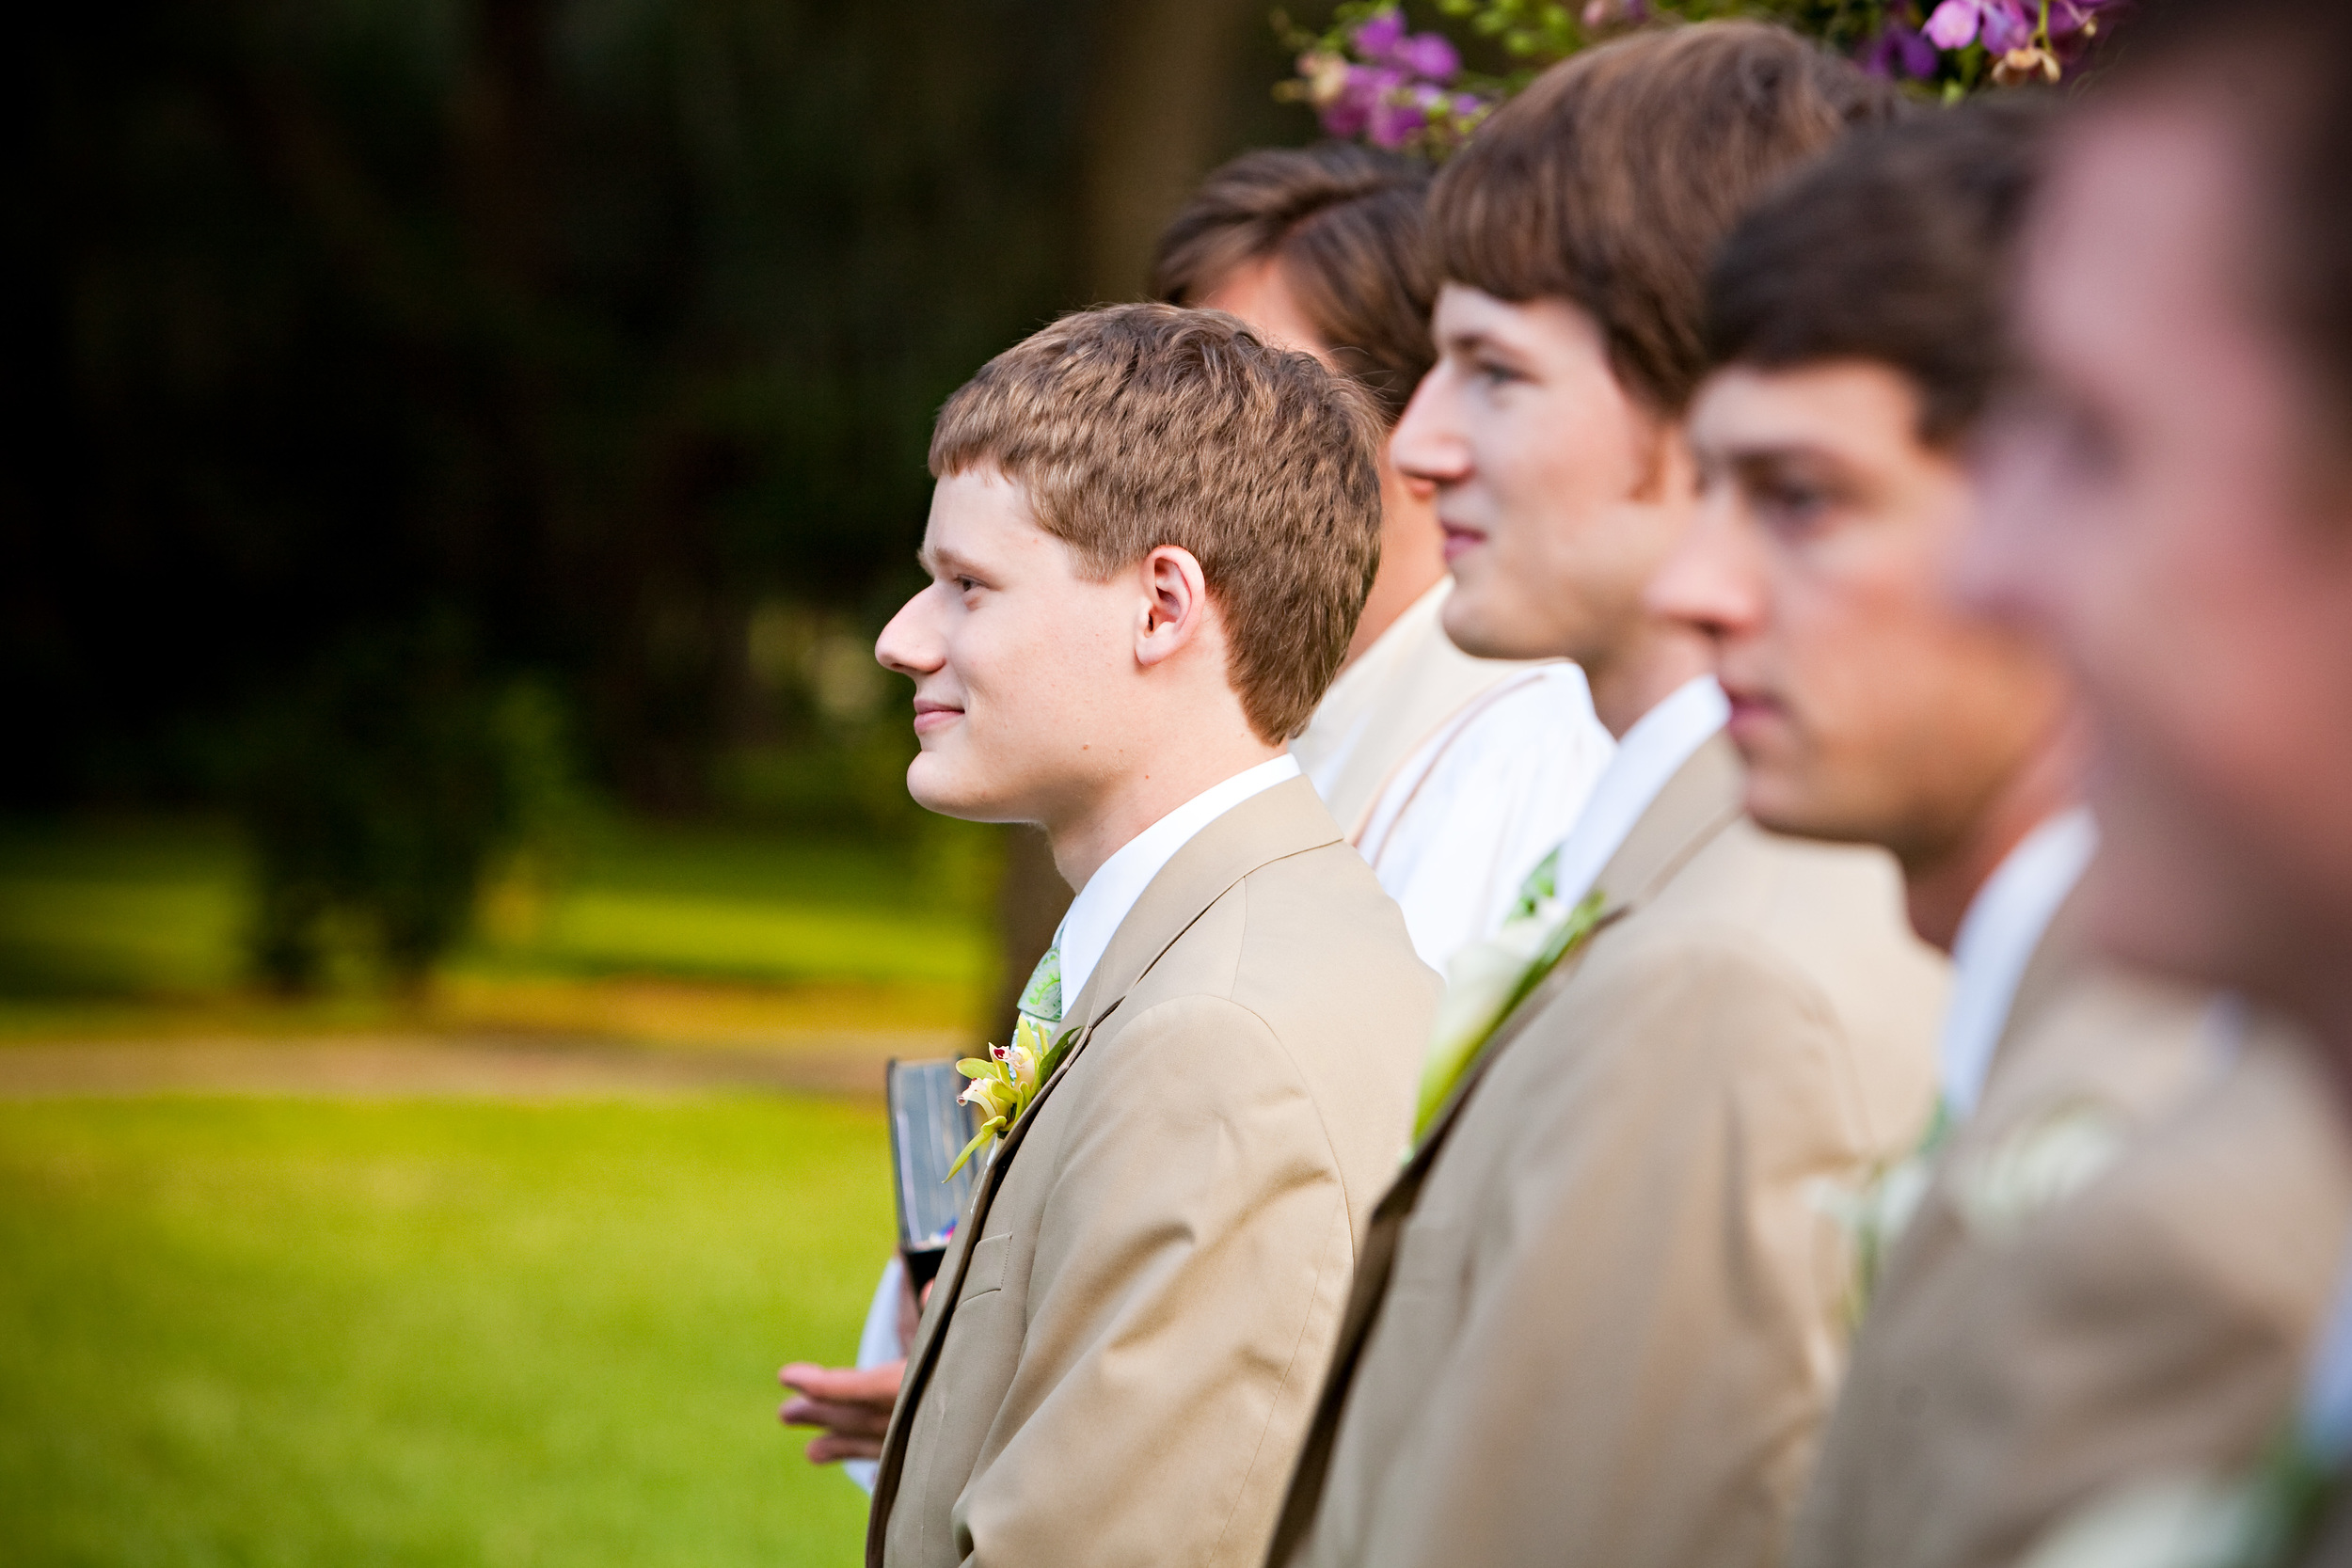 050_orlando_wedding_photographer_brian_adams_photographics.jpg